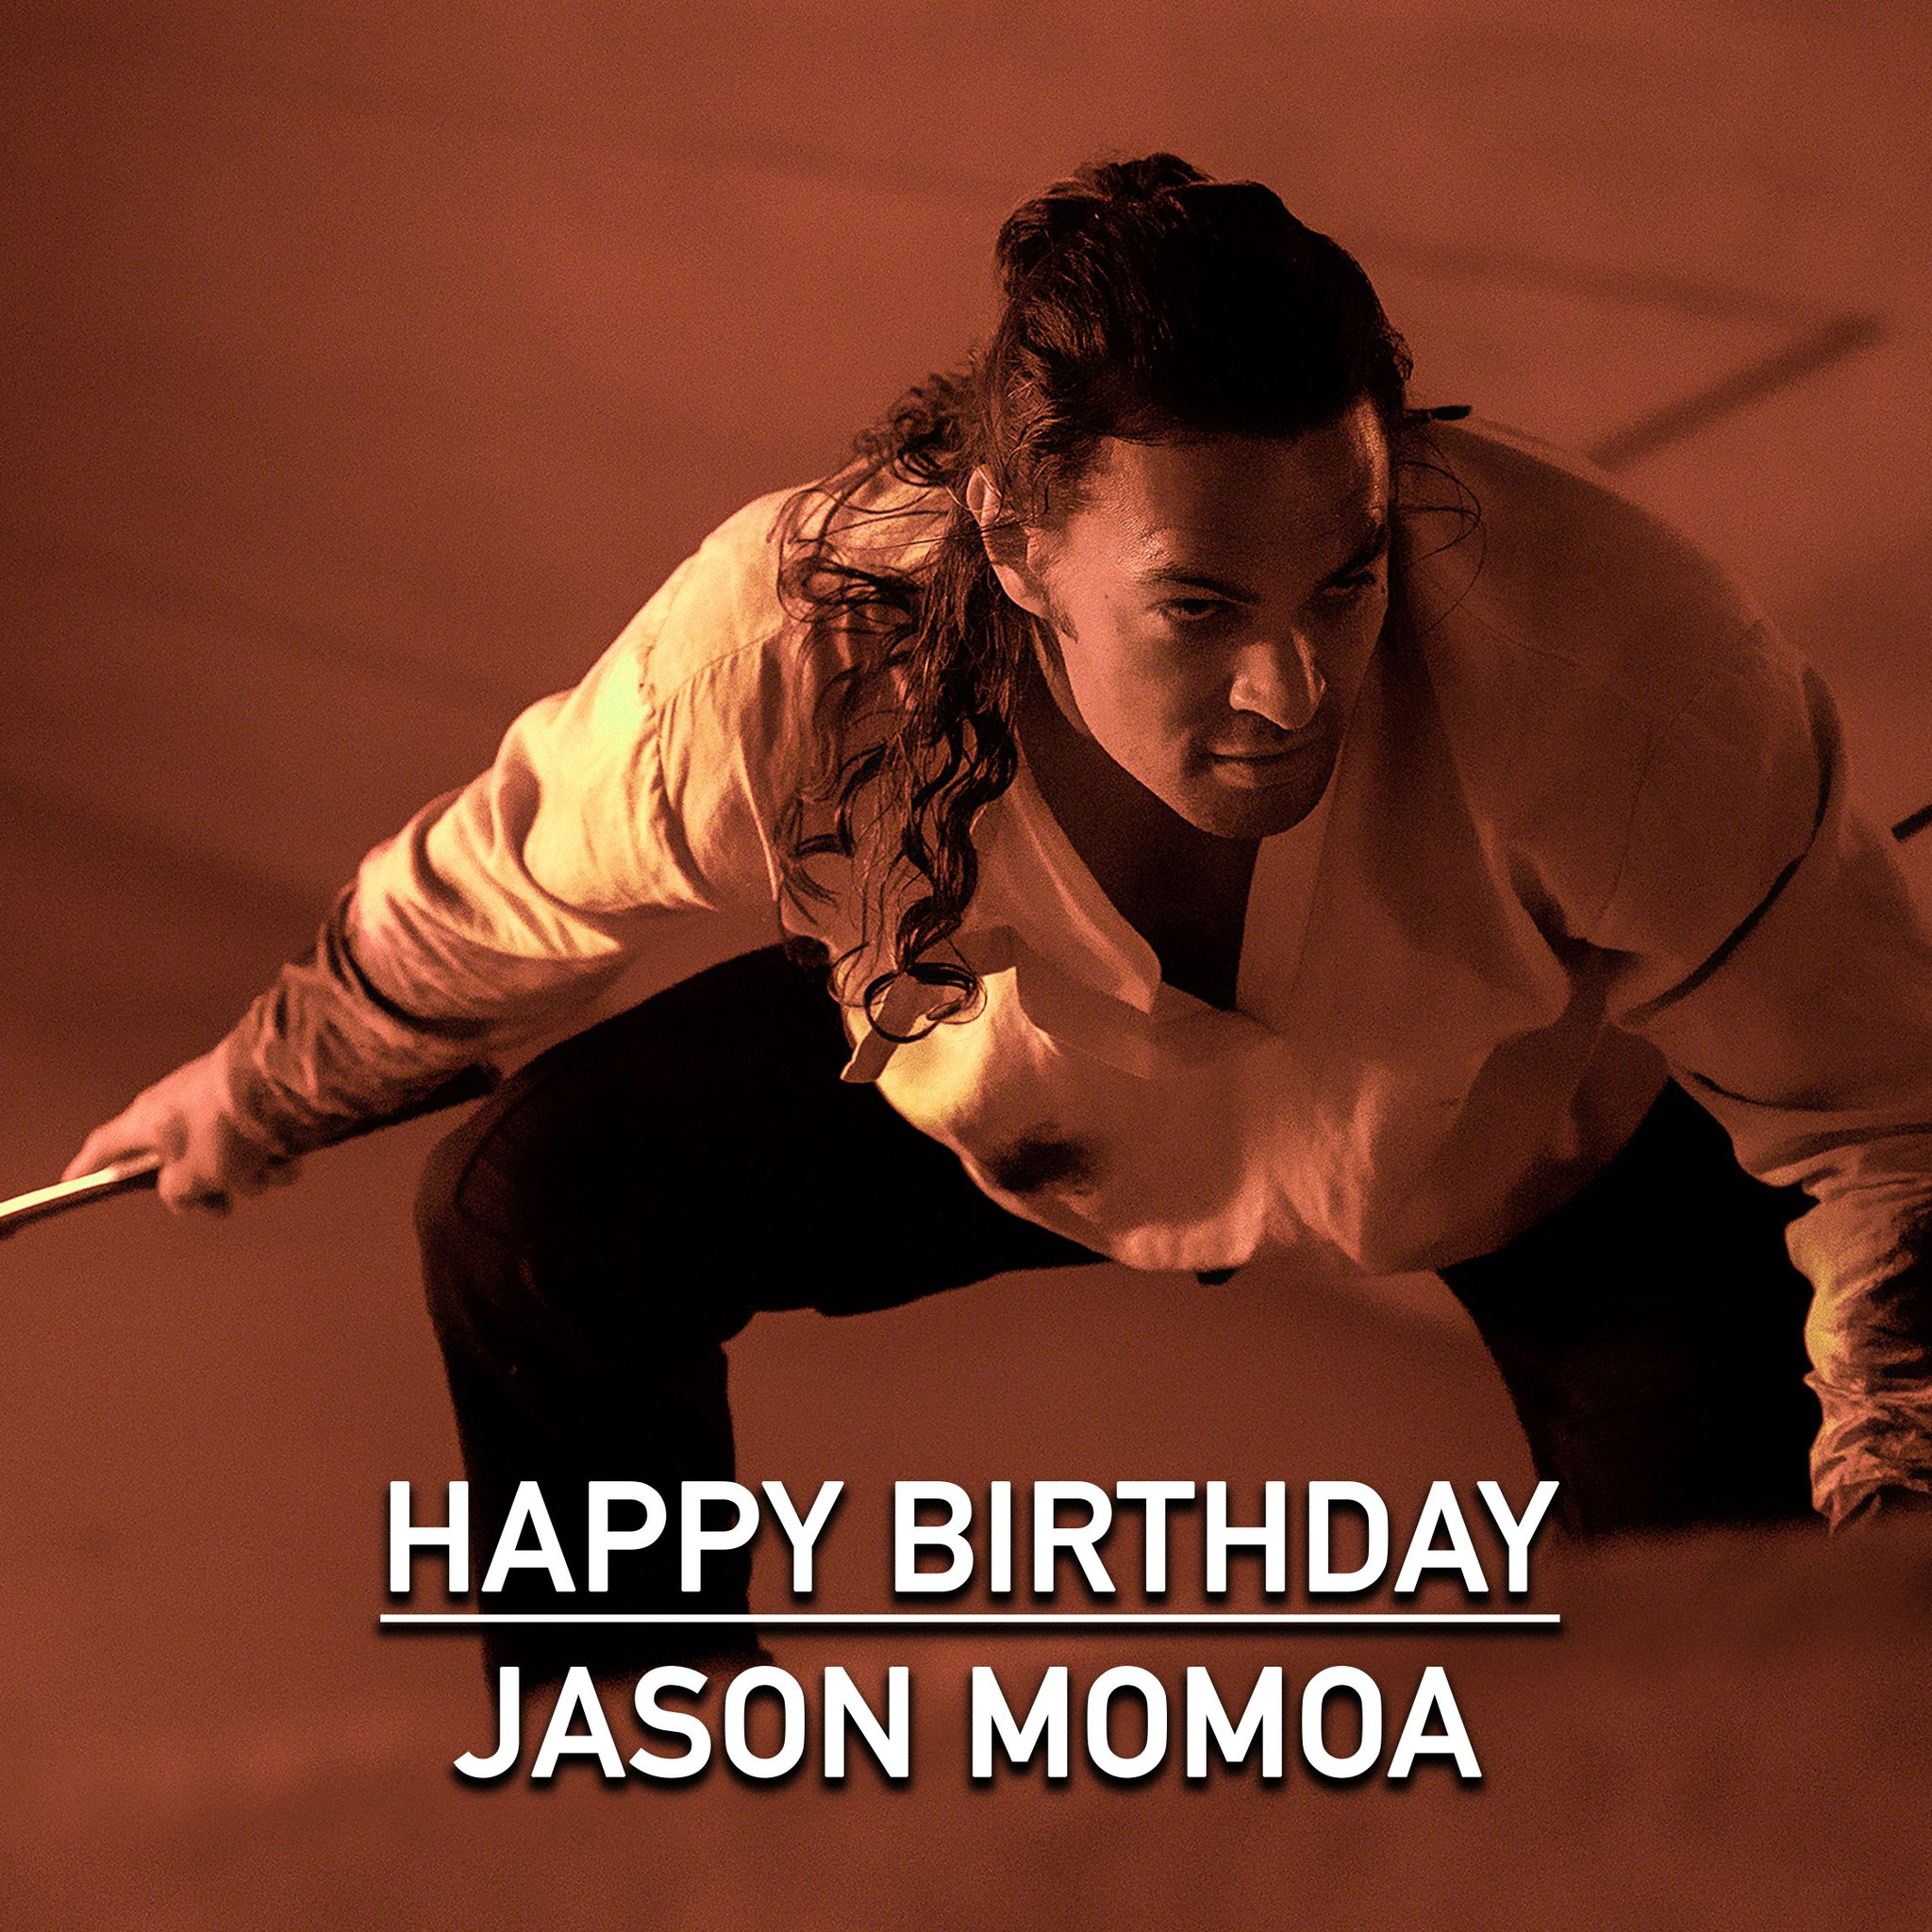 Happy Birthday to Jason Momoa, who plays a master swordsman in Denis Villeneuve s upcoming film DUNE .